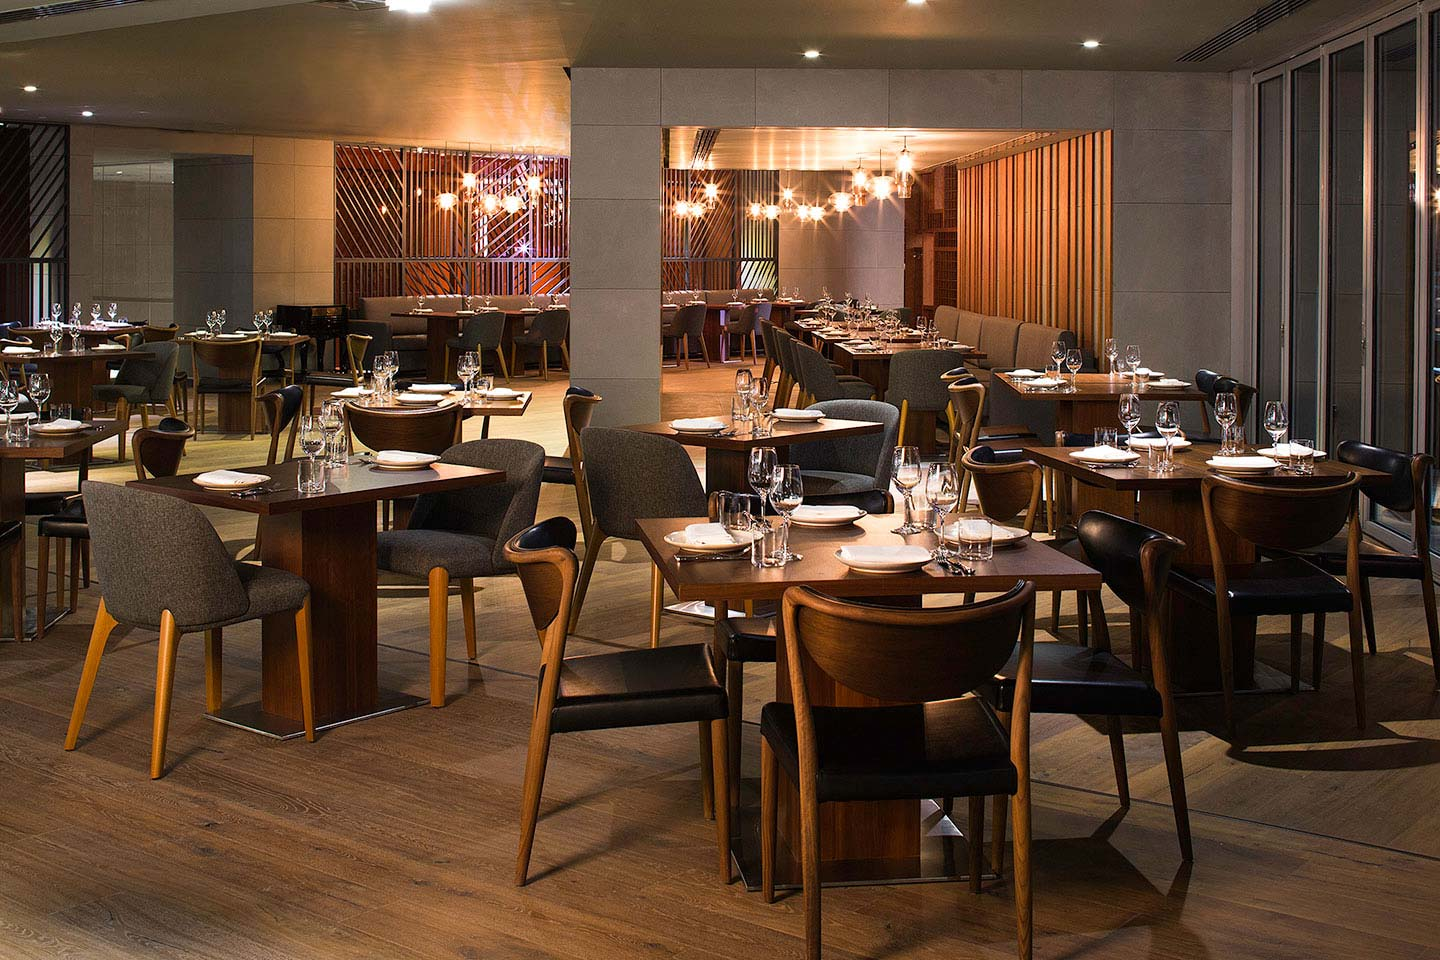 The interior of Marina Social with nicely laid out dining tables and intimate lighting